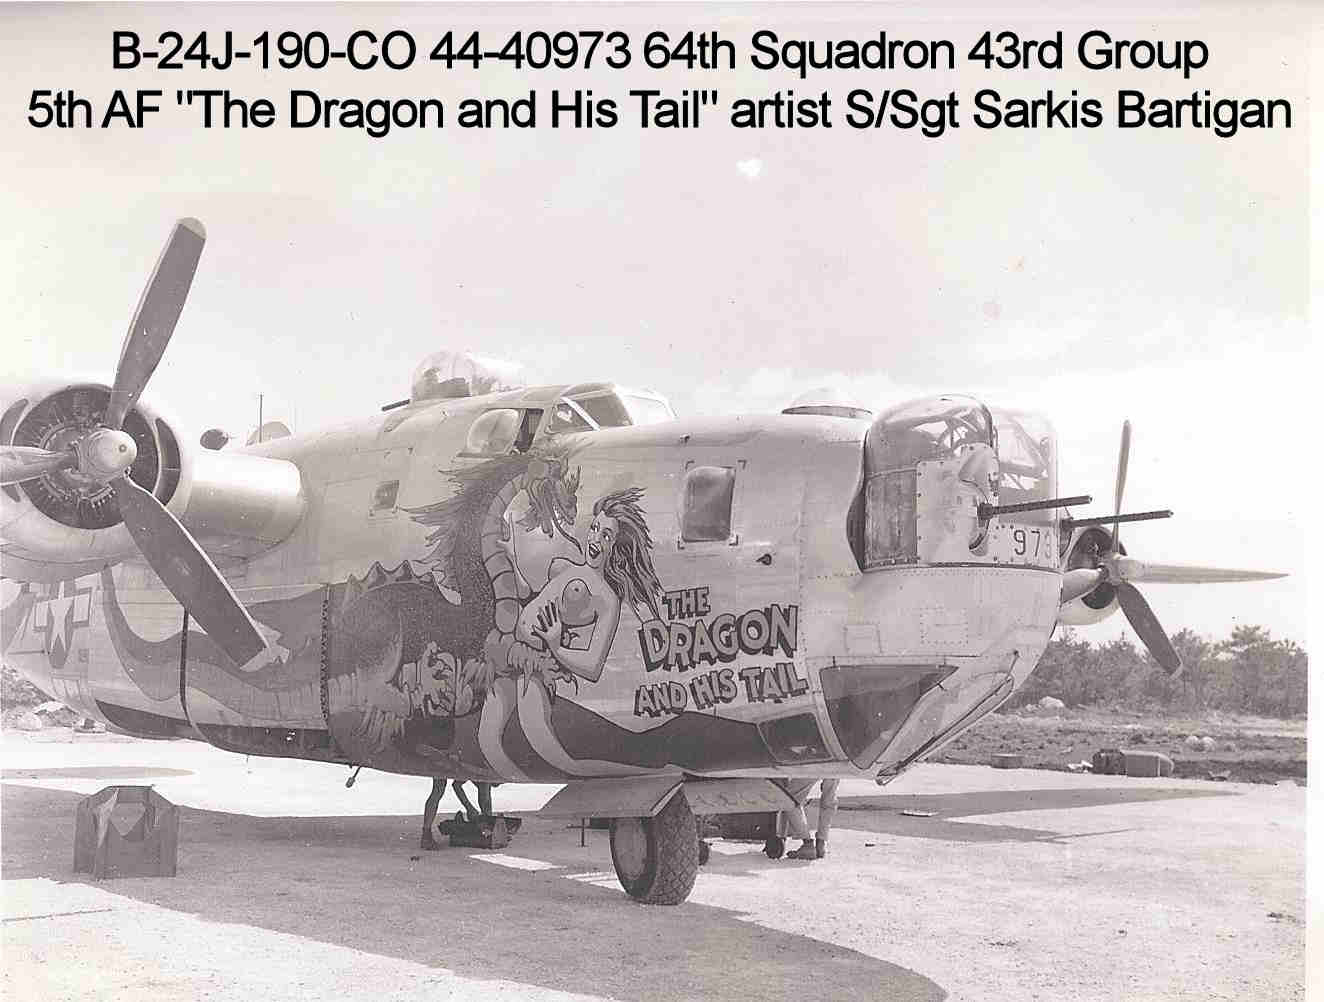 Tail Of The Dragon Photos >> 5th and 7th Air Force Nose Art Photos from Ie Shima 1945